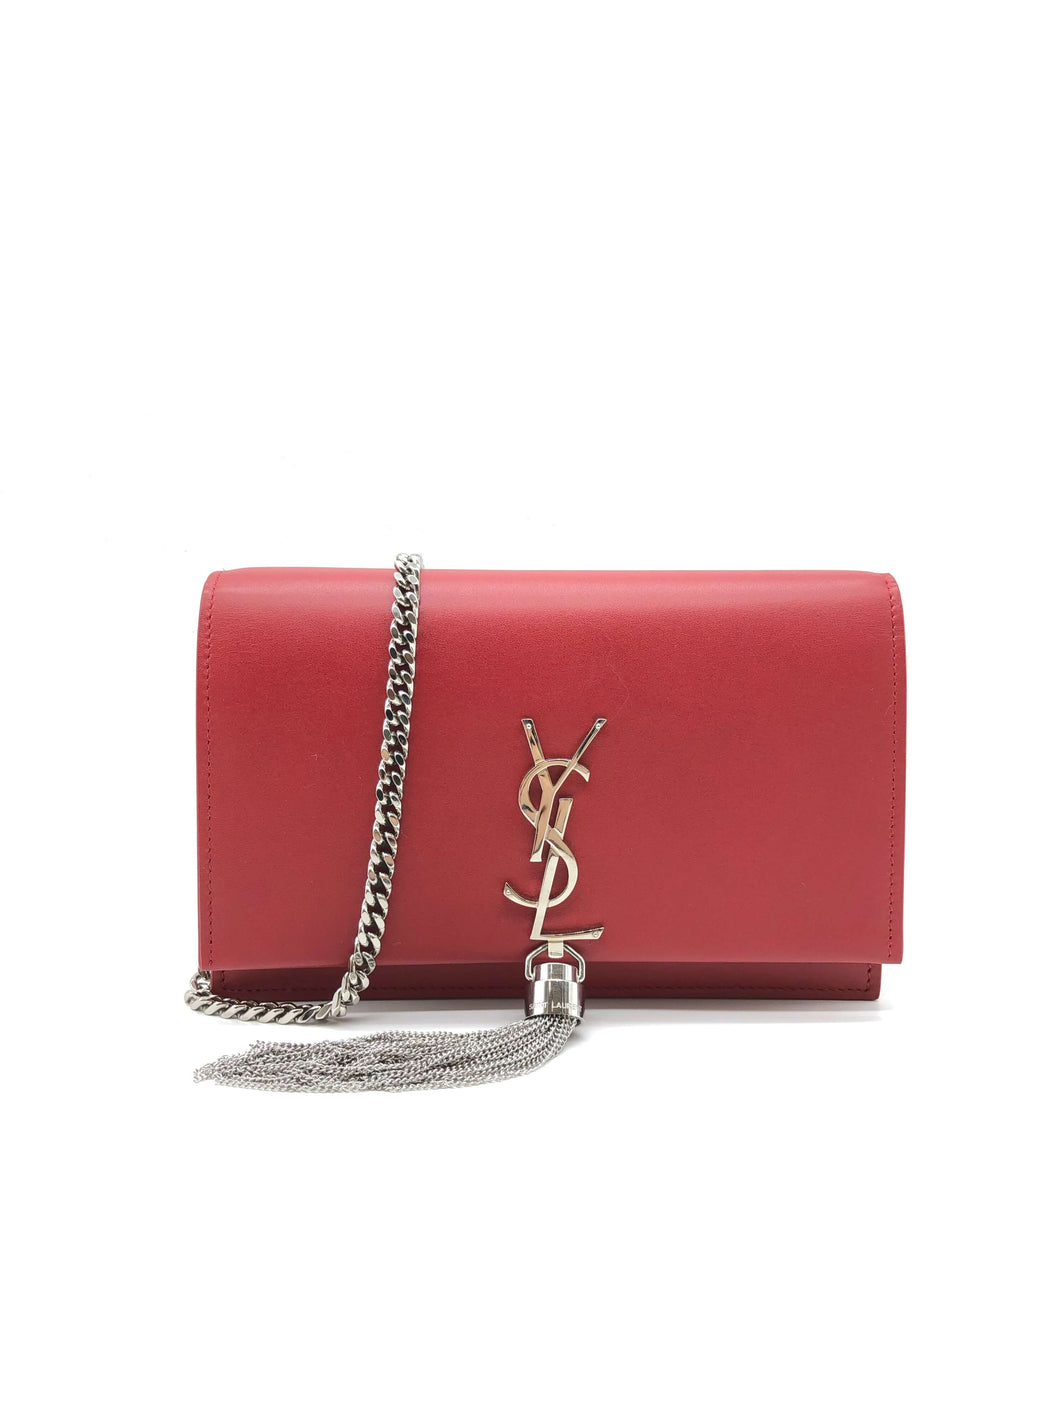 Yves Saint Laurent Red Kate Tassel Bag